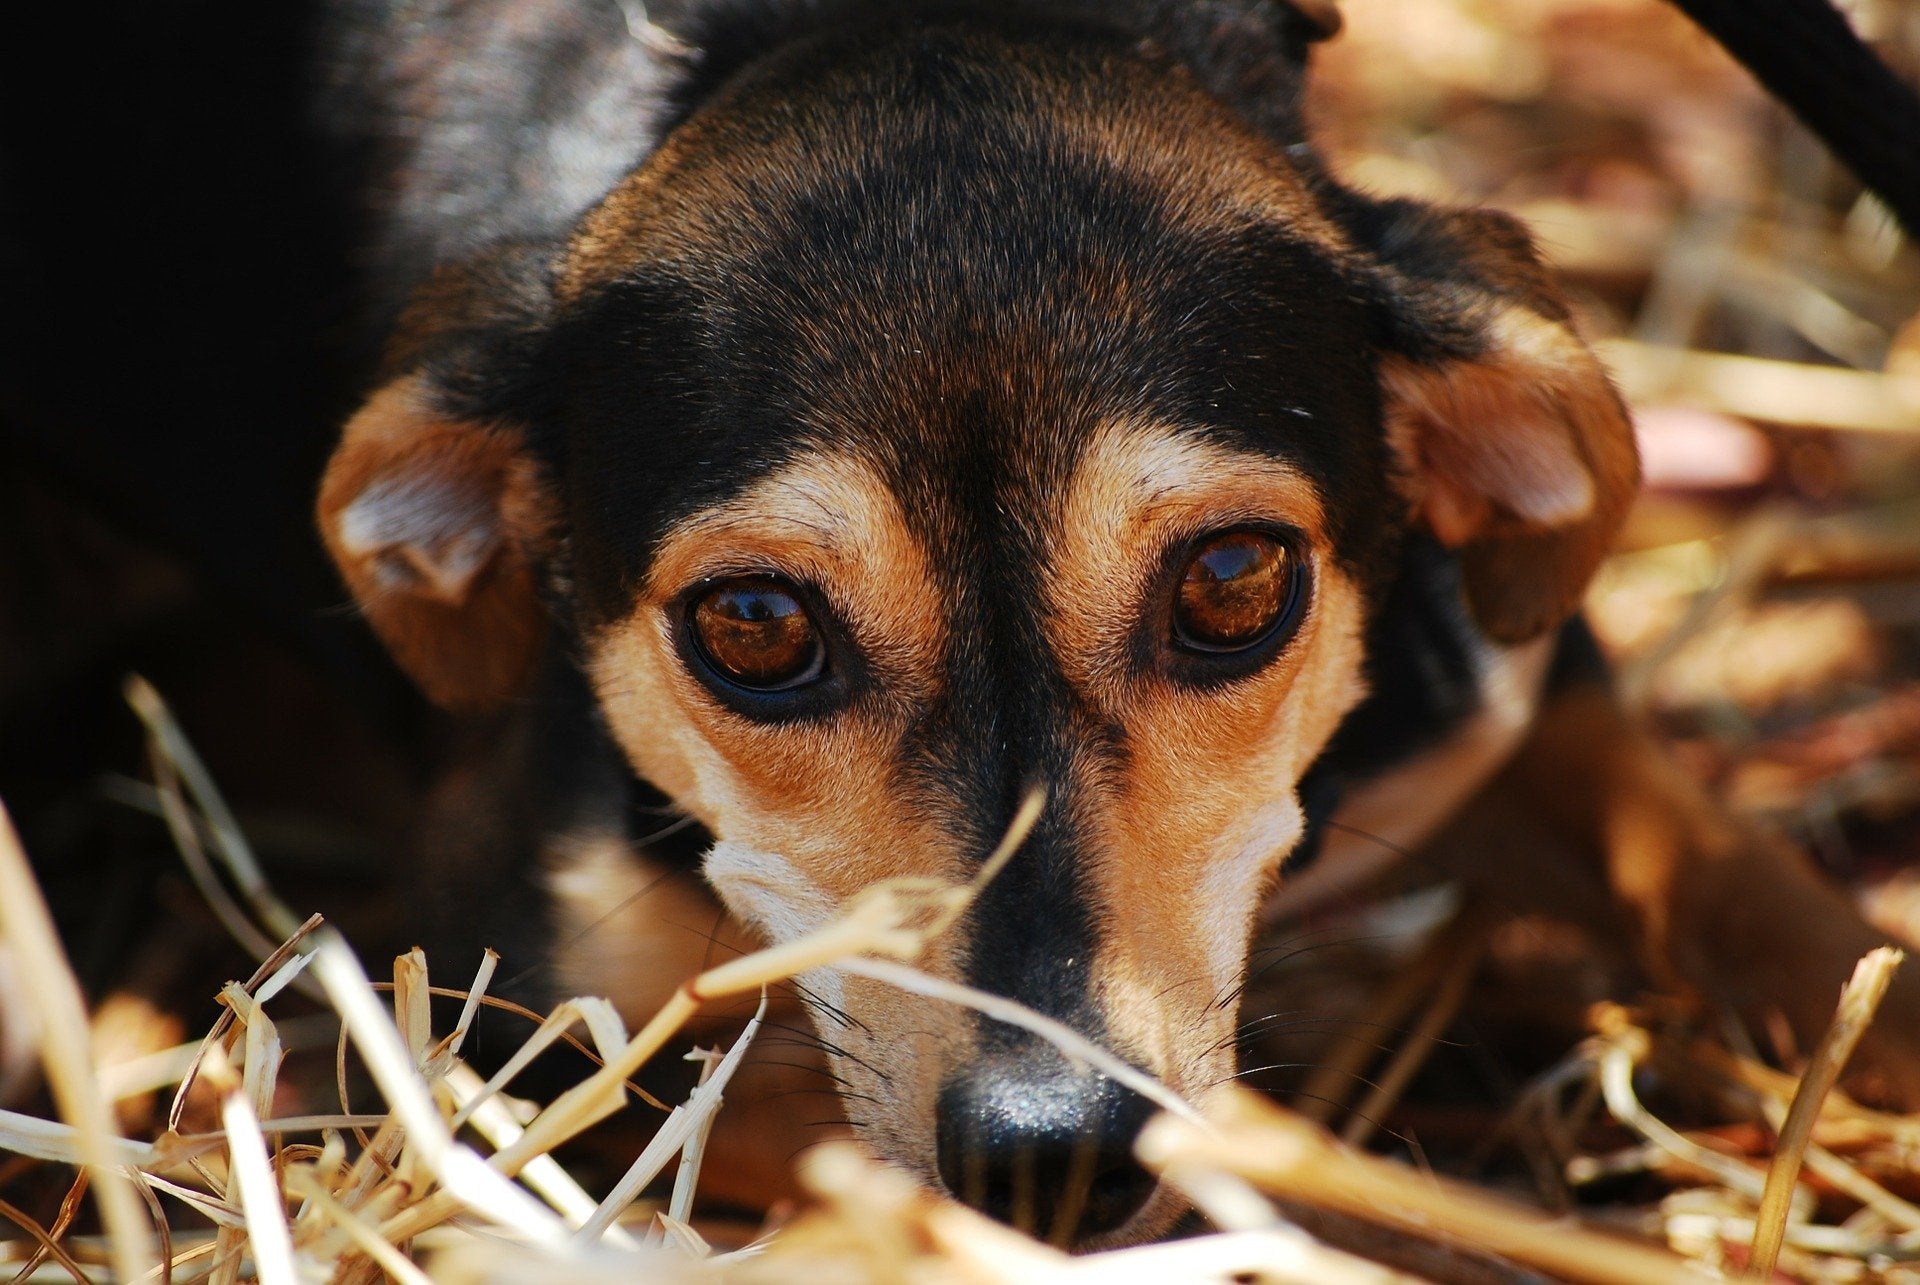 Scared dog with big eyes in long grass